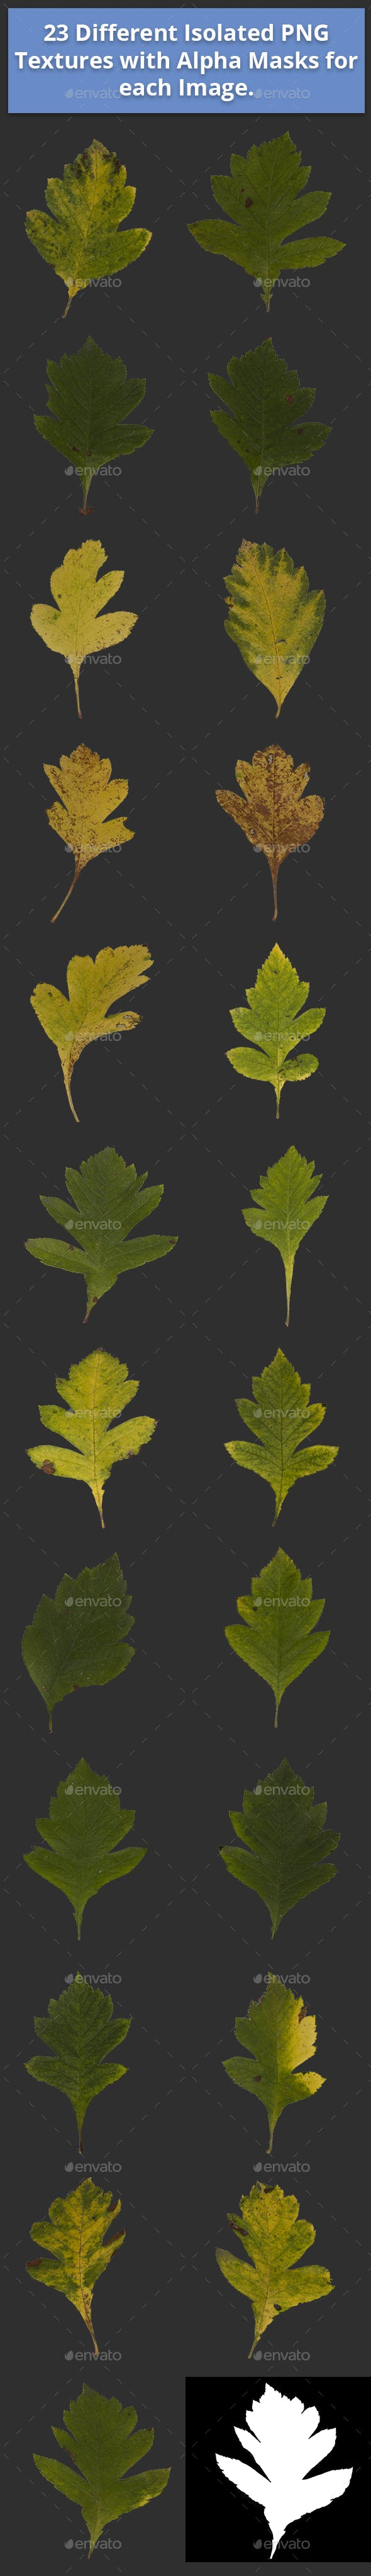 Pack of 23 Different Isolated Autumn and Summer Leaves - 3DOcean Item for Sale